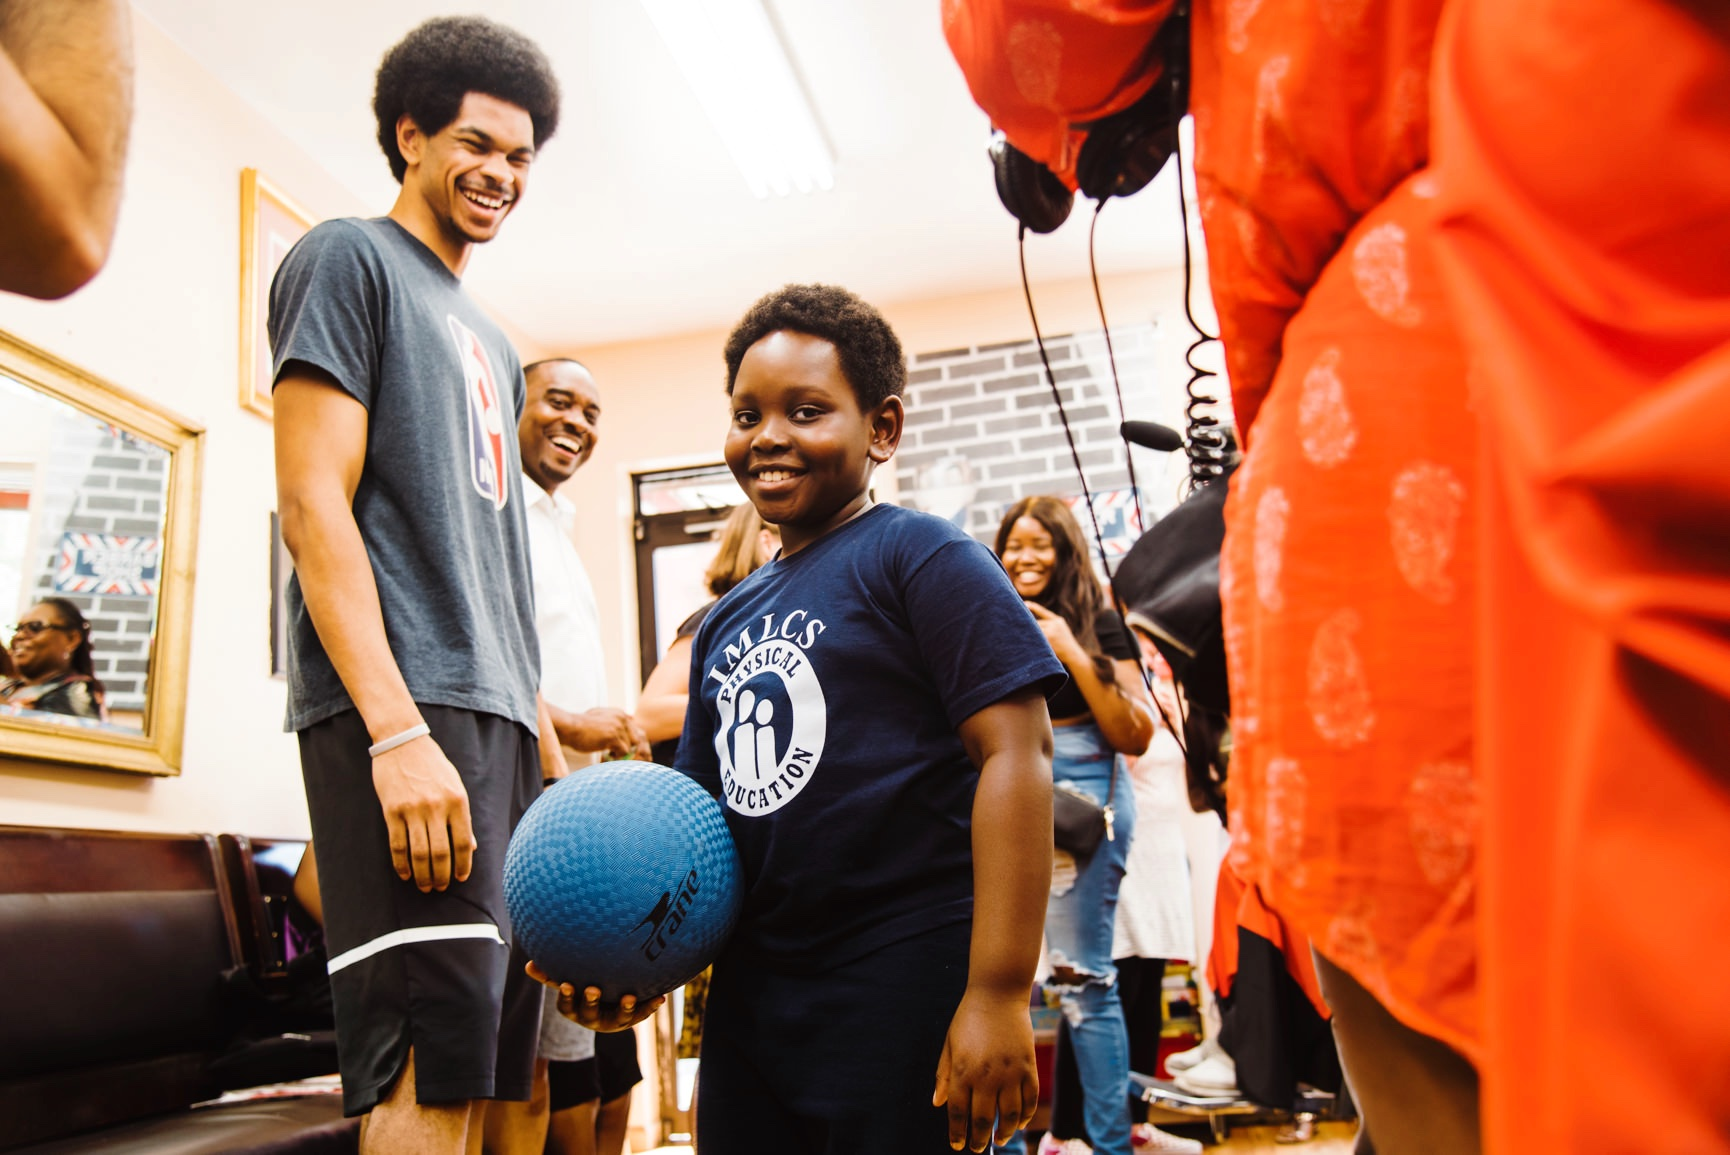 BROOKLYN NETS PLAYER JARRETT ALLEN TO PROVIDE BACK-TO-SCHOOL HAIRCUTS FOR BROOKLYN CHILDREN 8/30